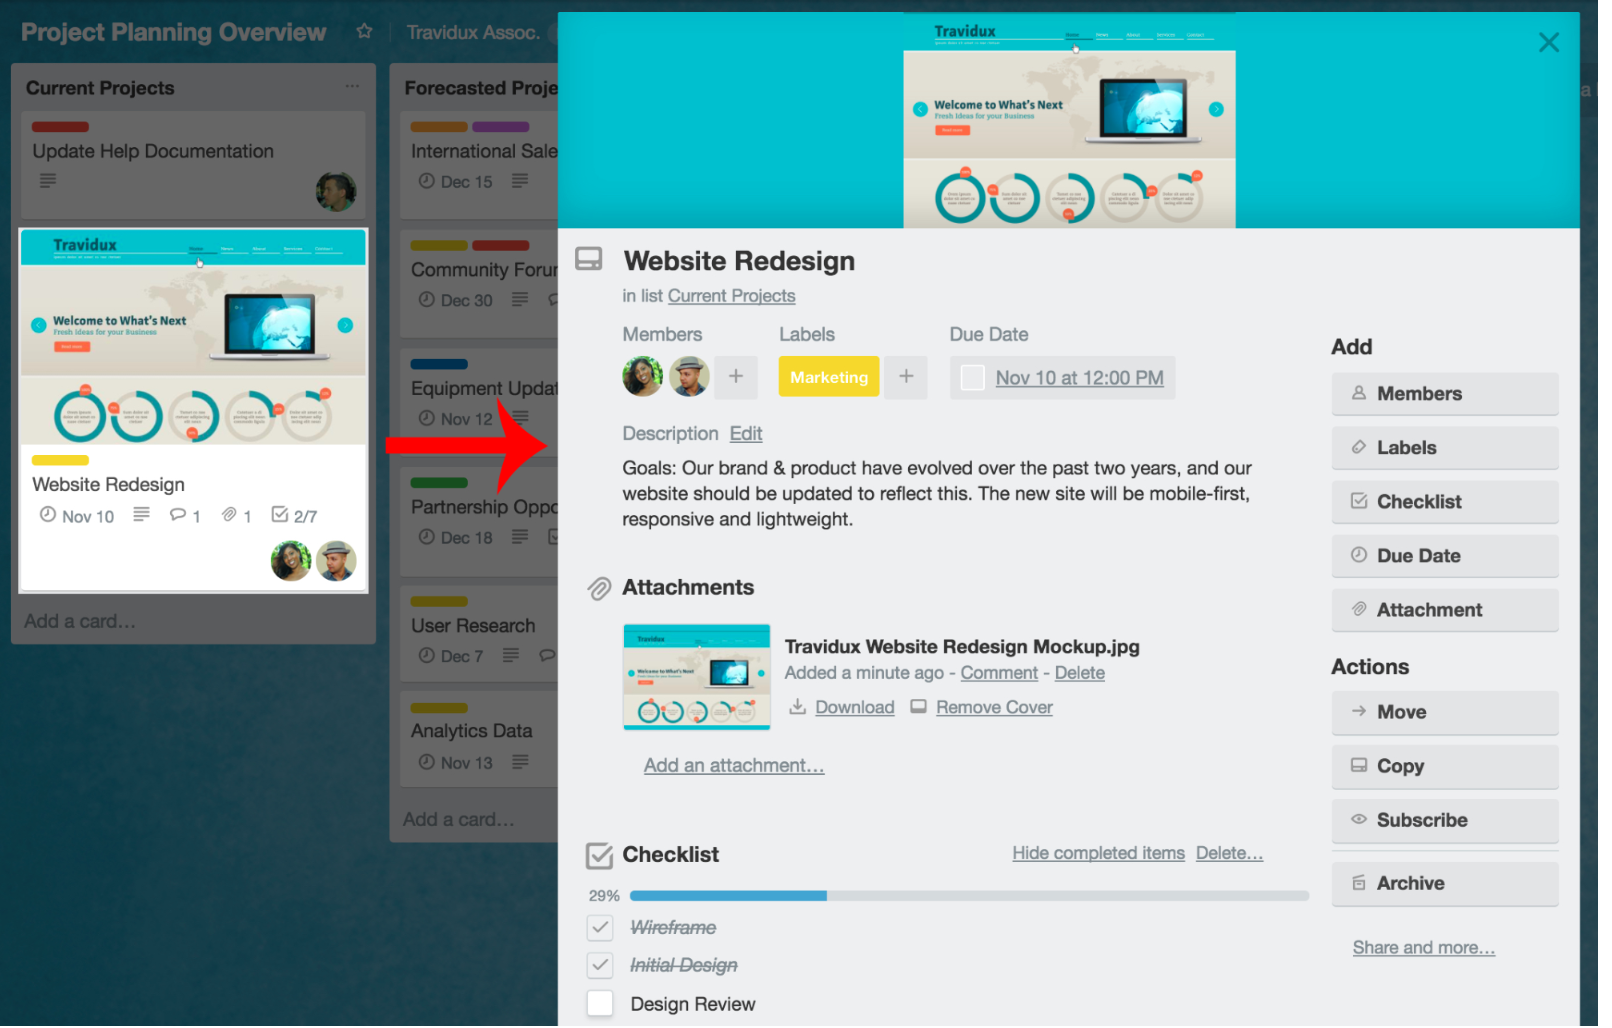 Get more insights per card by clicking on them within Trello